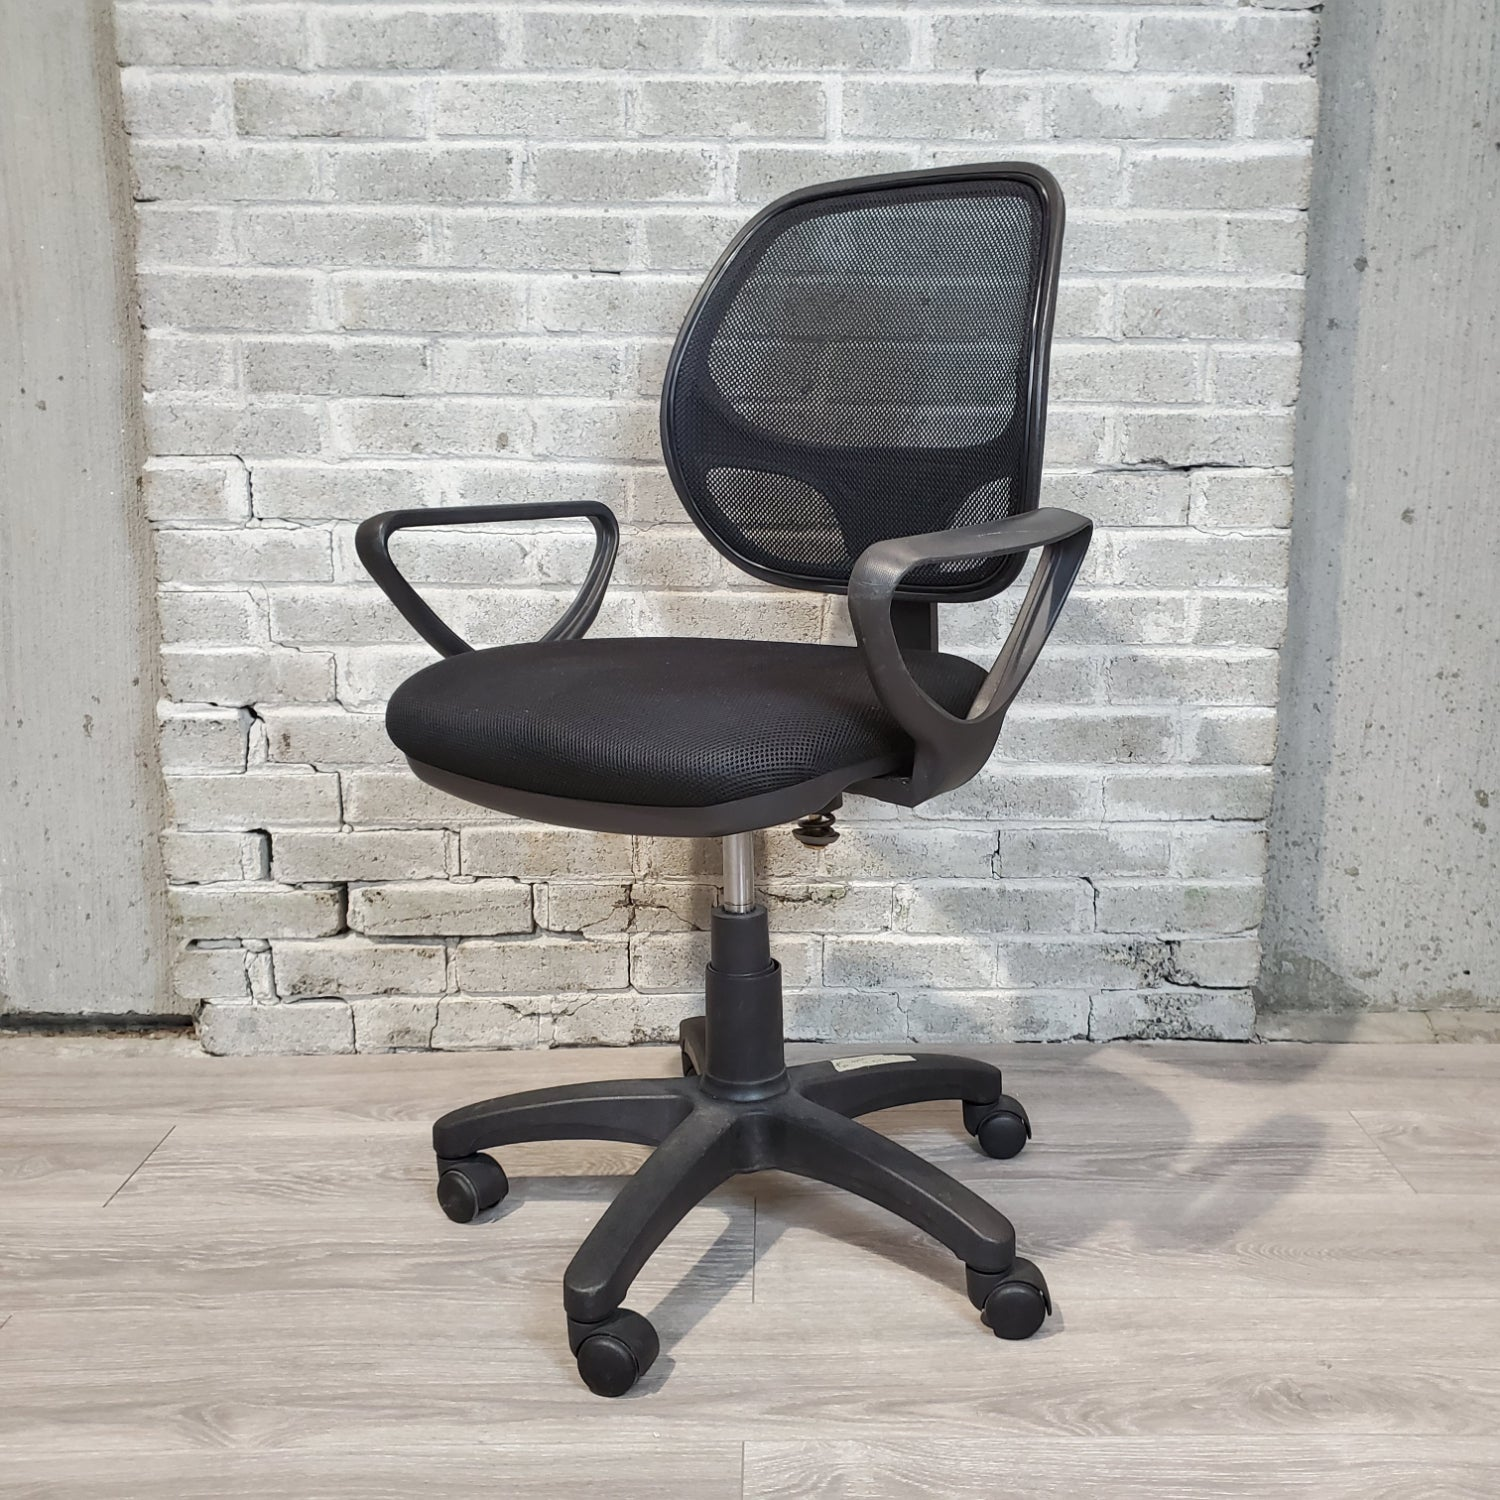 Pre-Owned - Used Mesh Task Chair - Duckys Office Furniture